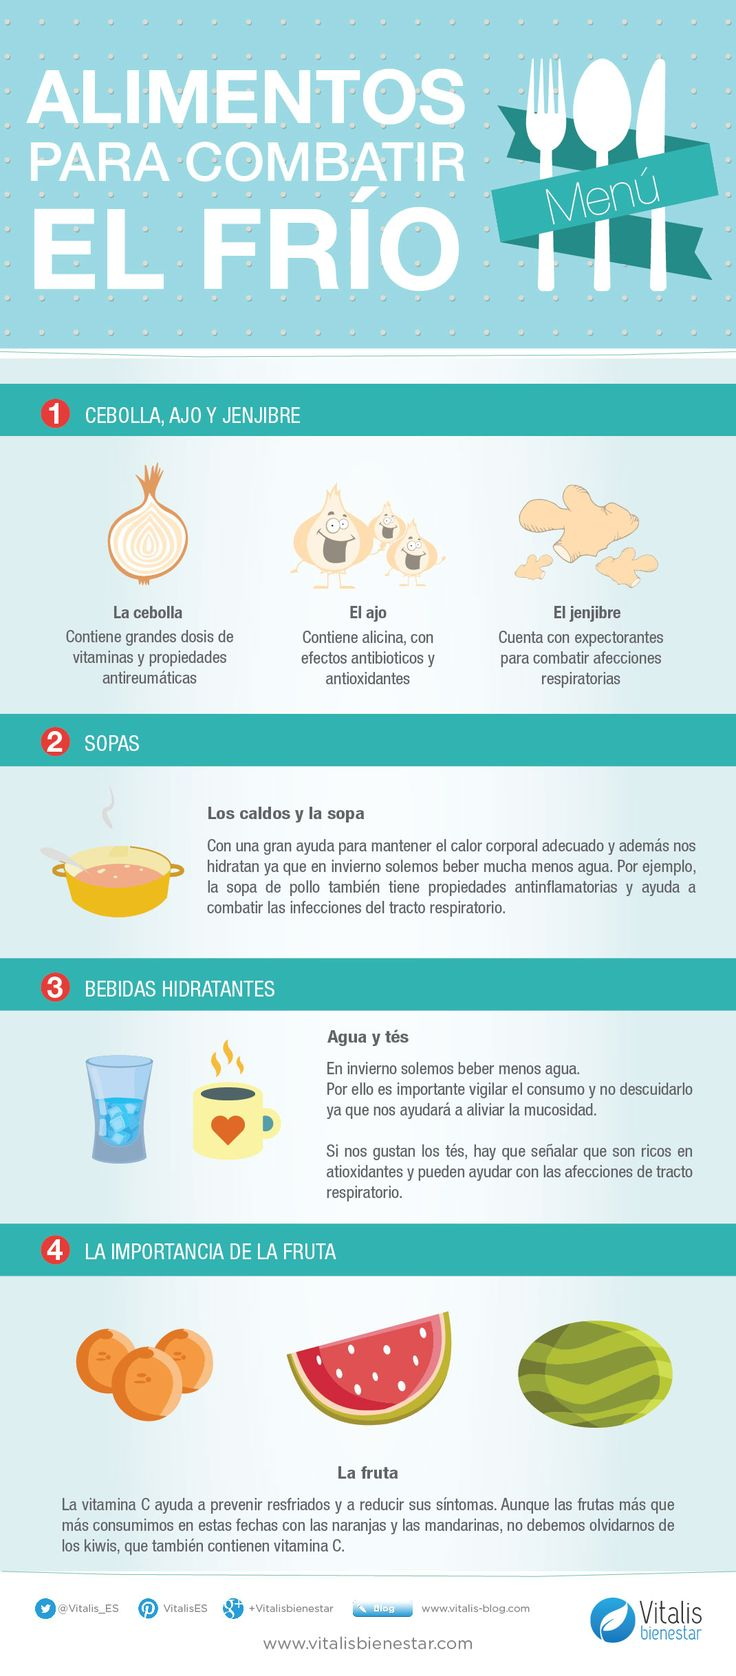 17 Best images about Salud on Pinterest | Tes, Health and